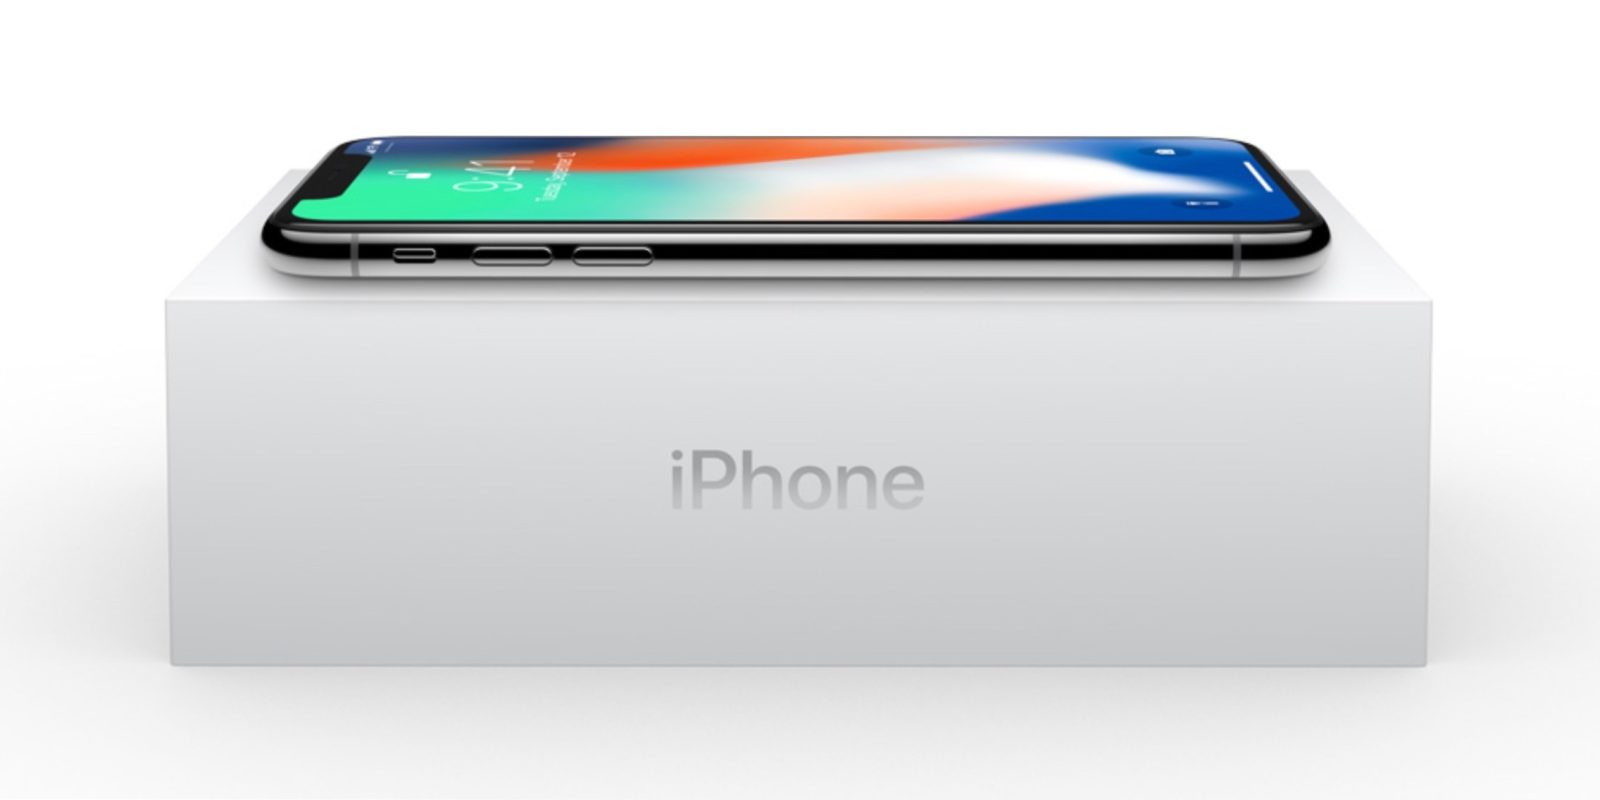 Iphone 8 And Iphone X Fast Charge Battery To 50 In 30 Minutes If